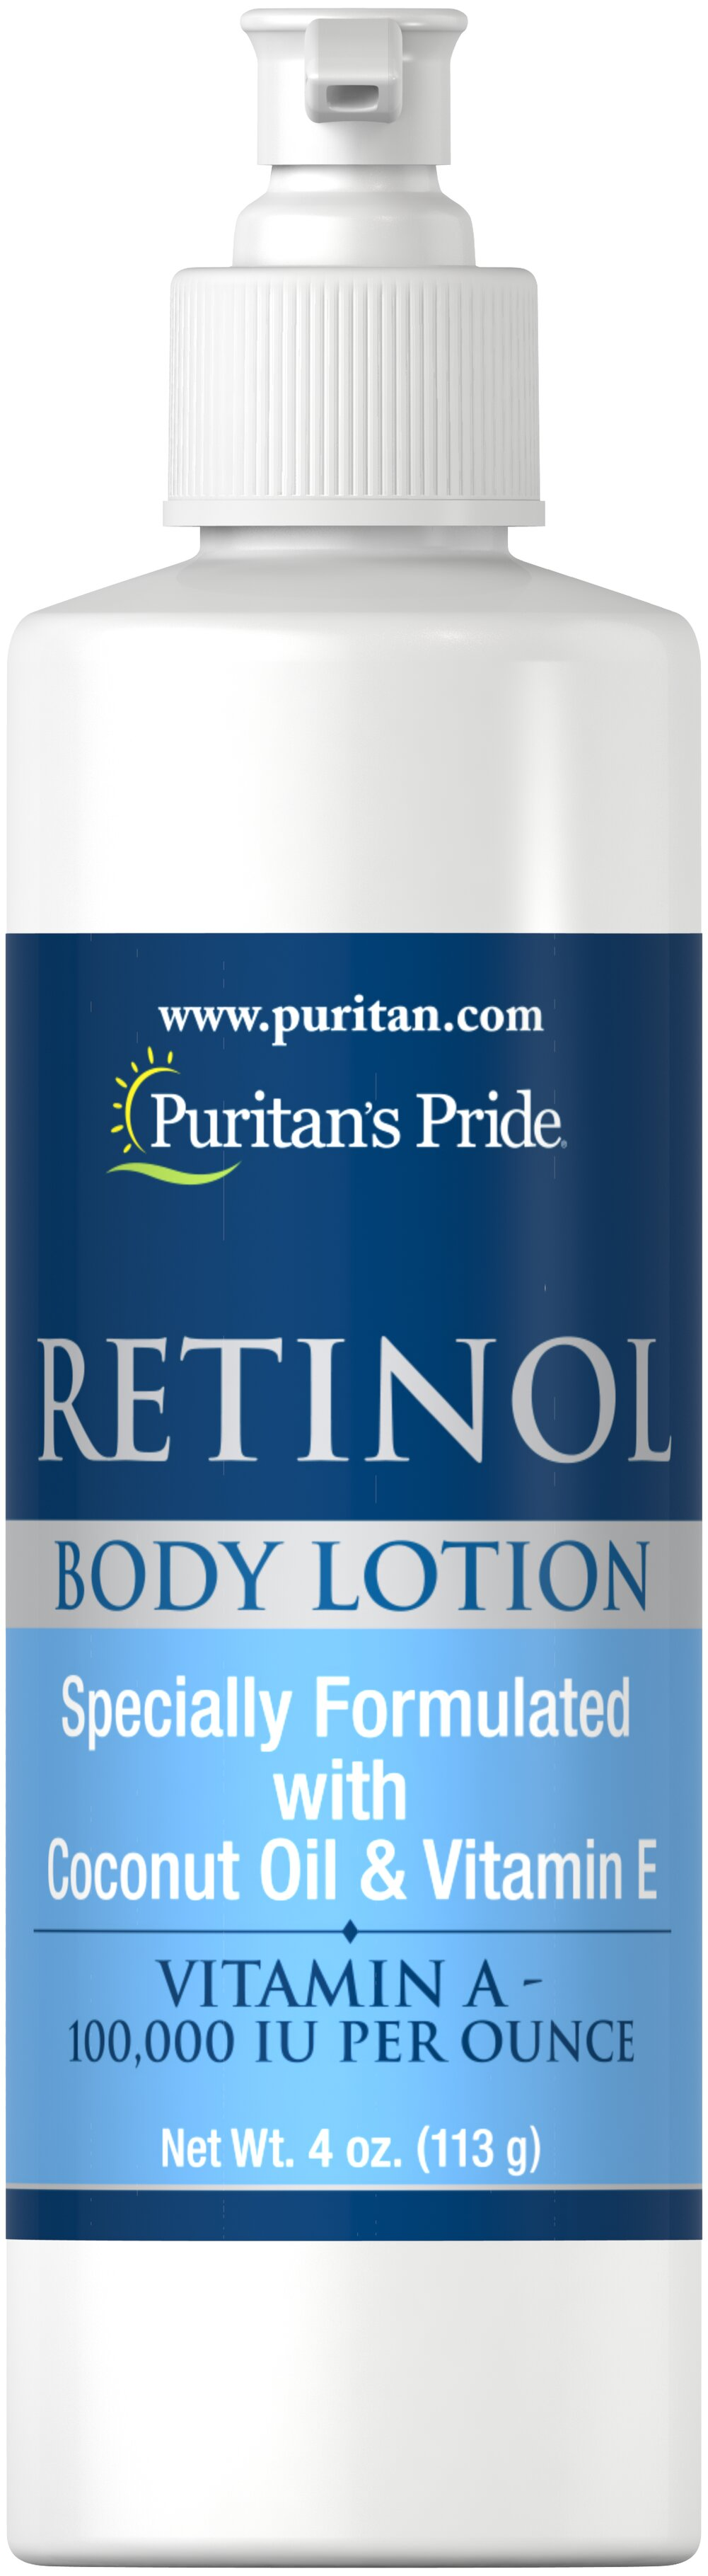 Retinol Body Lotion (Vitamin A 100,000 IU Per Ounce)  4 oz Lotion 100000 IU $11.19